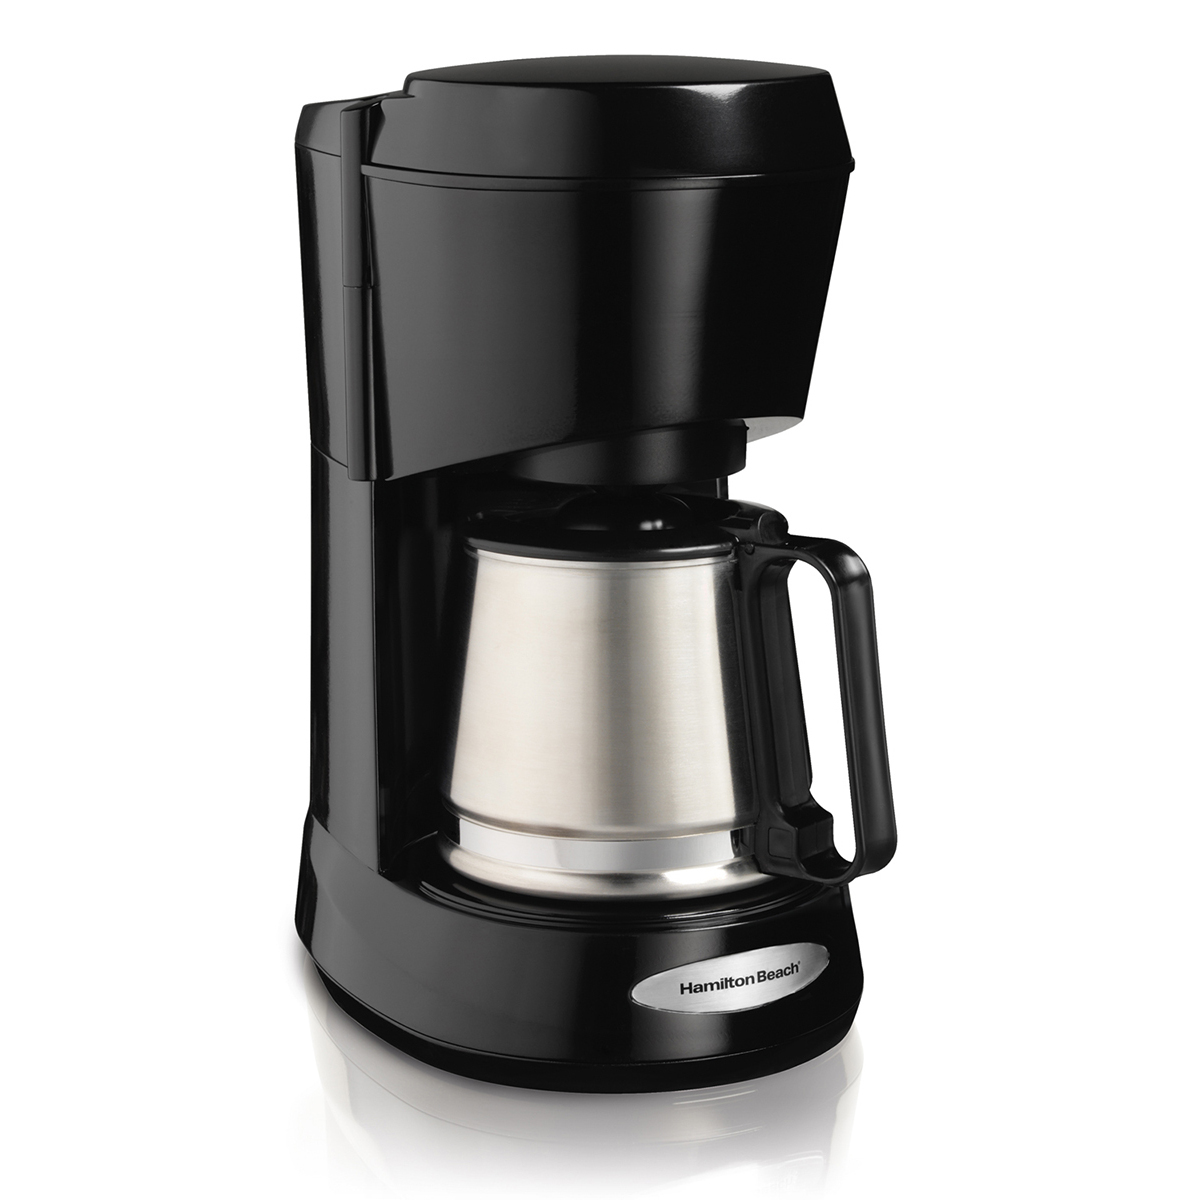 5 Cup Coffee Maker (48137)